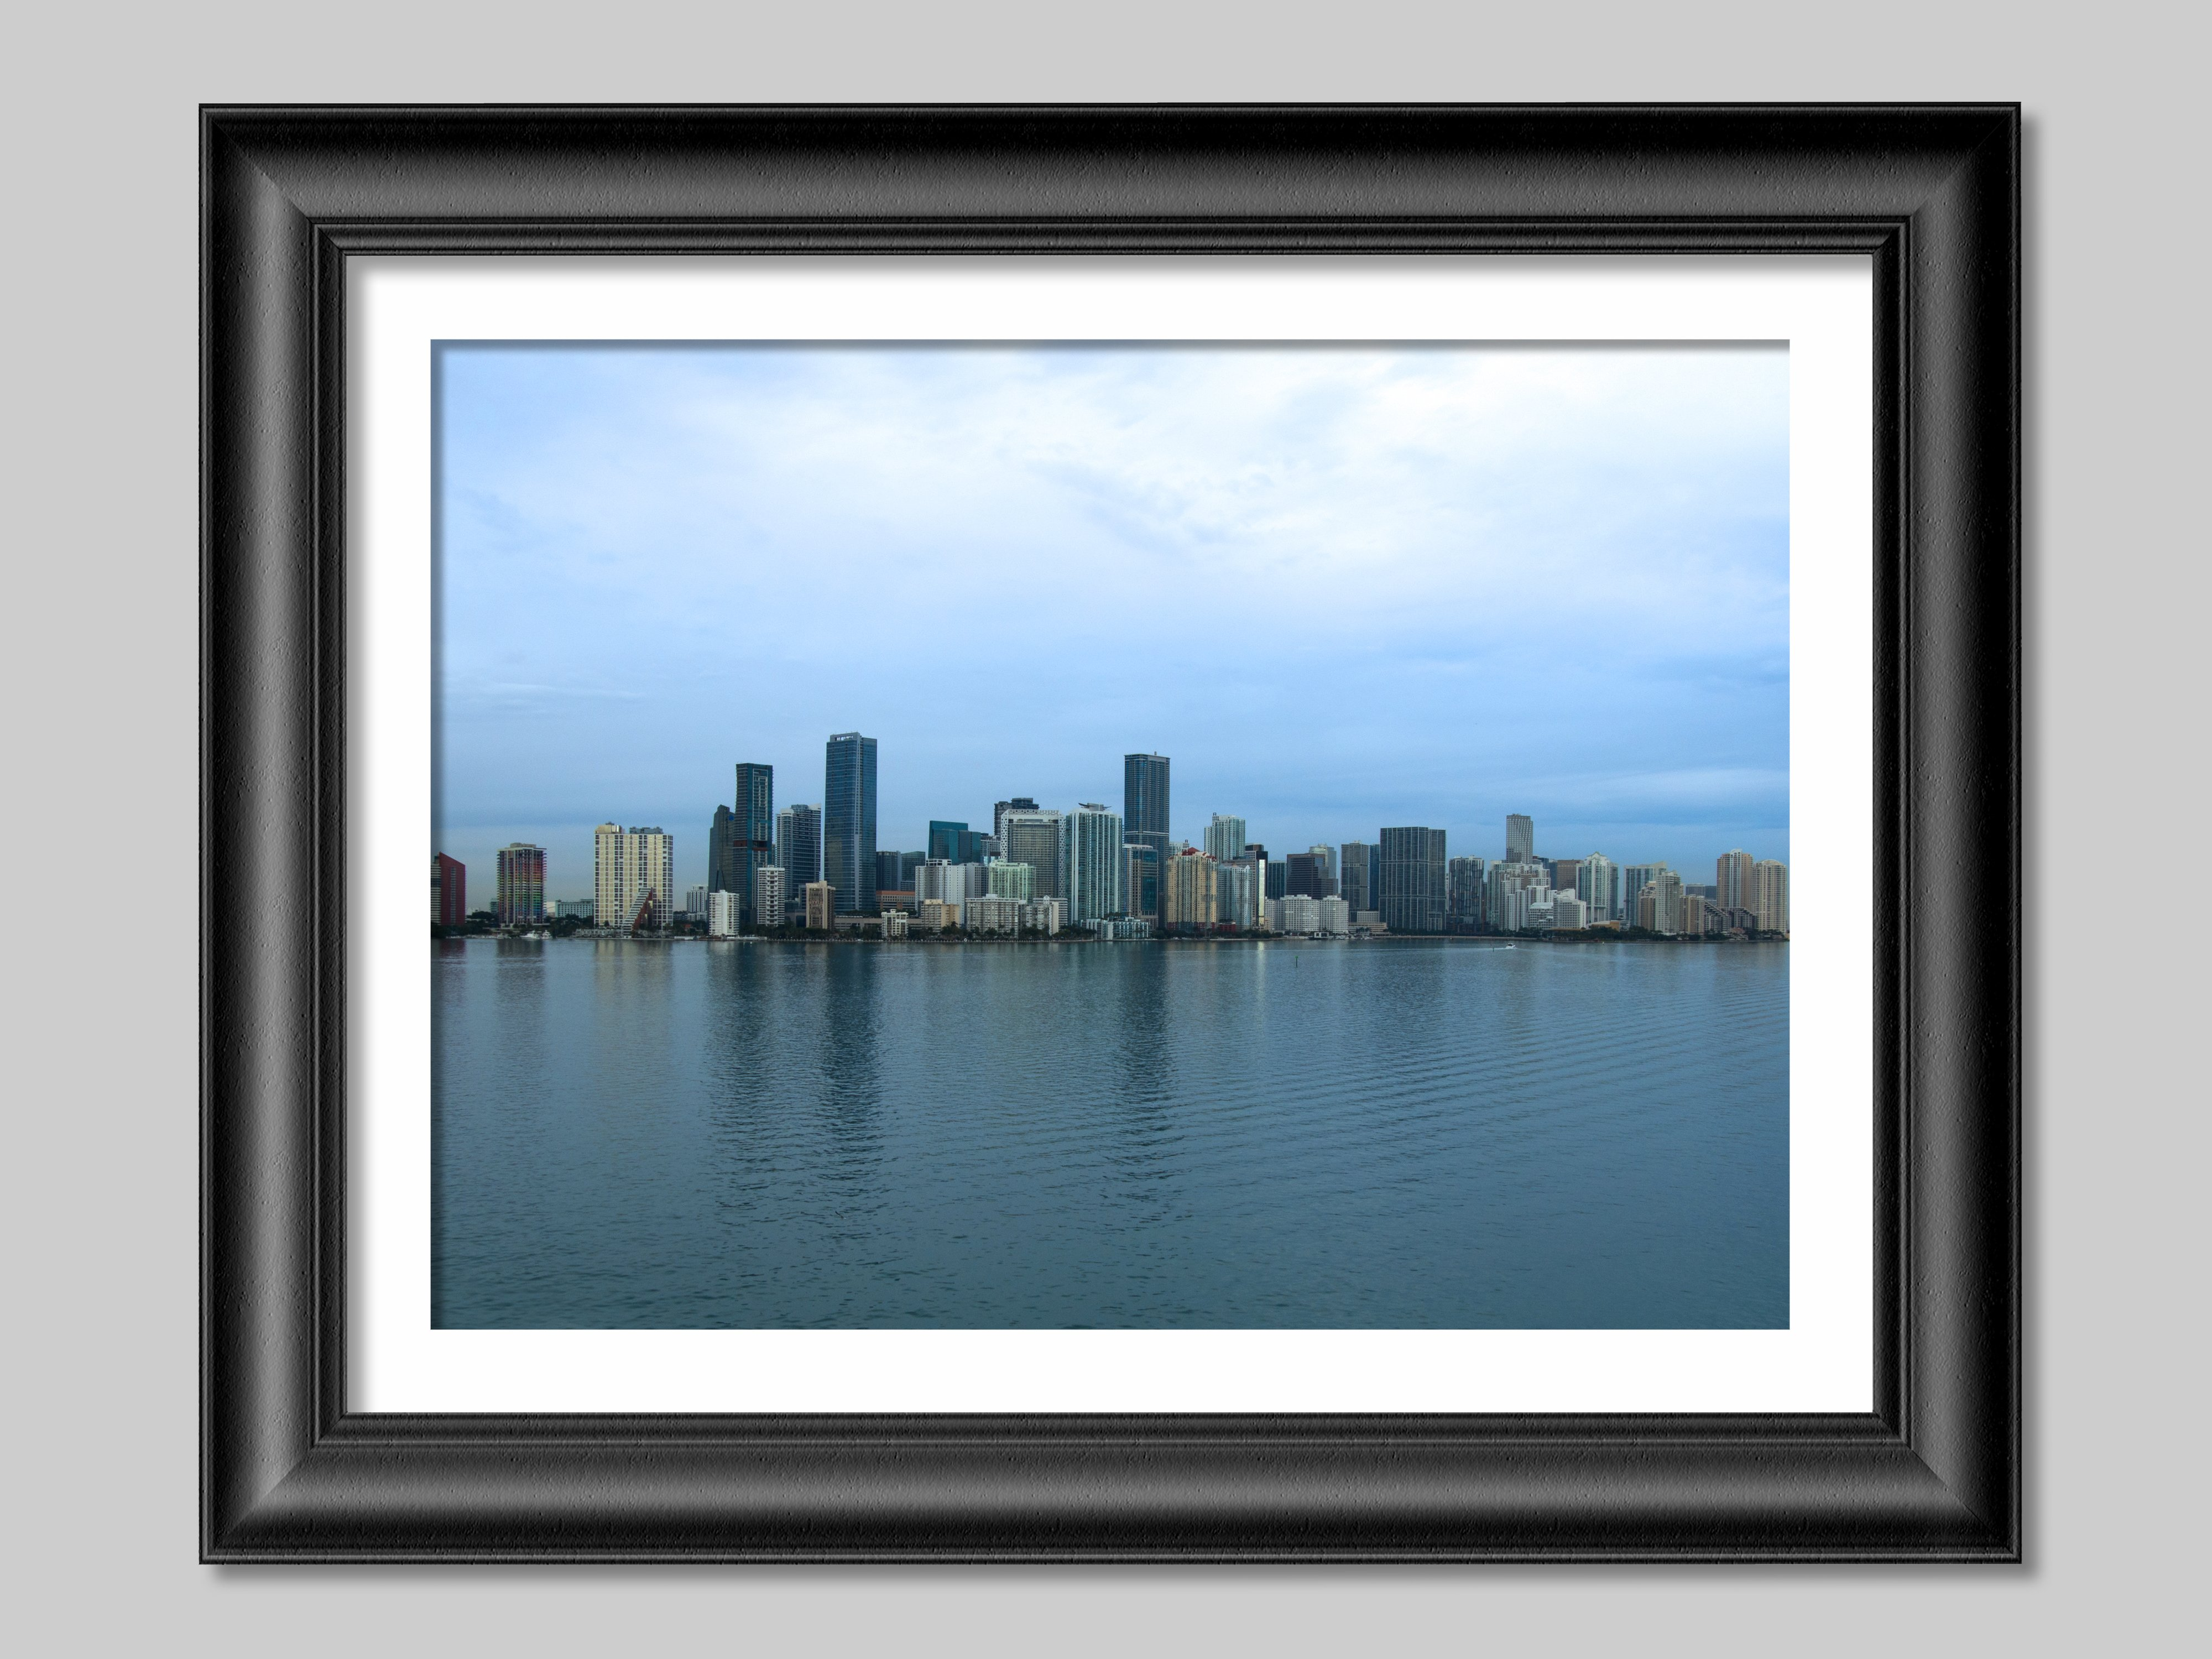 USA-Miami skyline